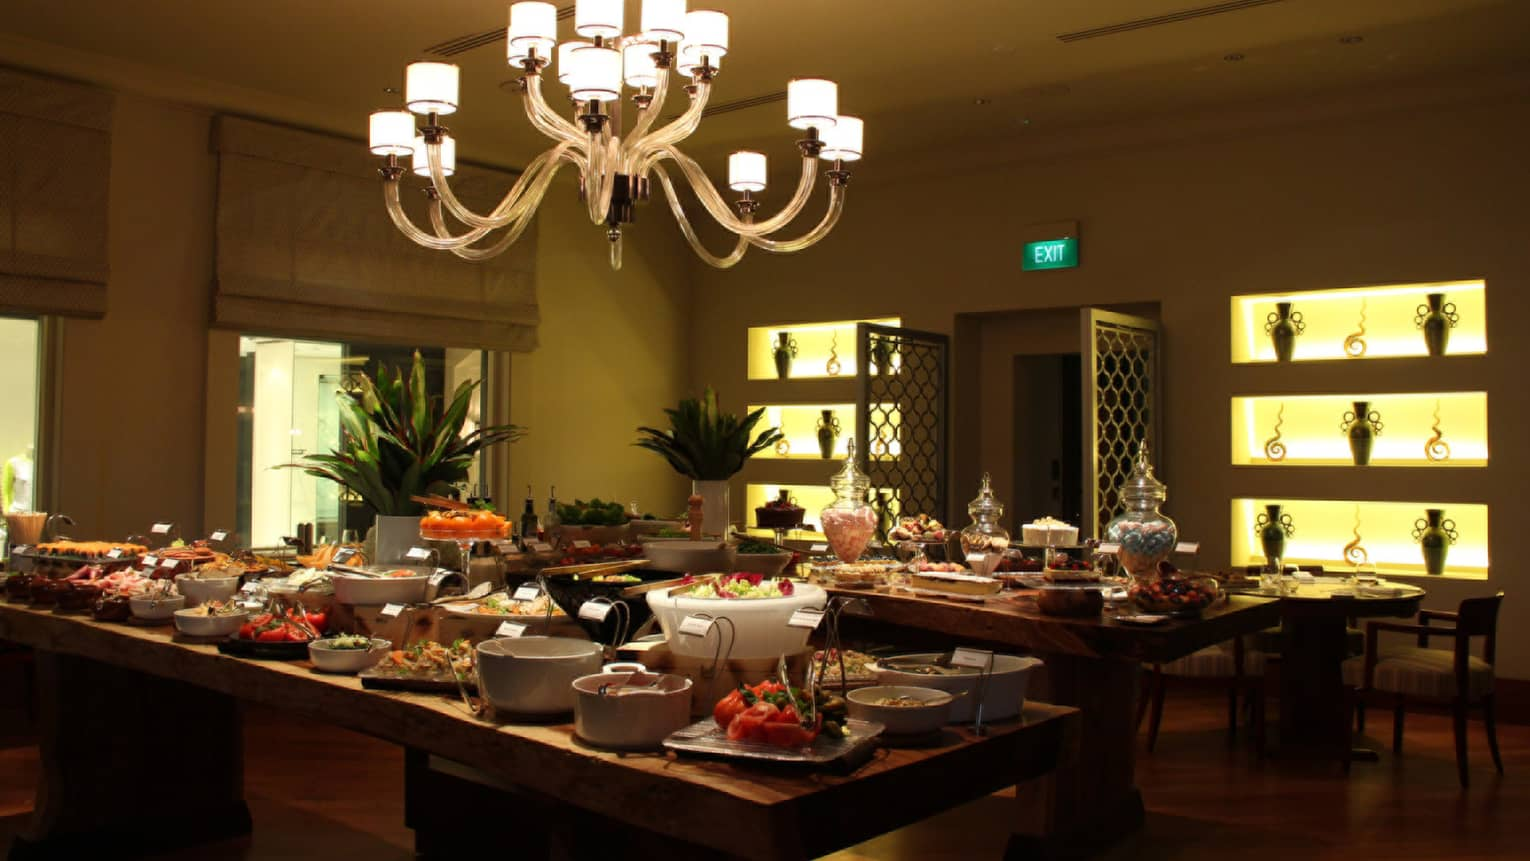 One-Ninety Restaurant buffet tables with large dishes with meals, desserts, tall vases with flowers